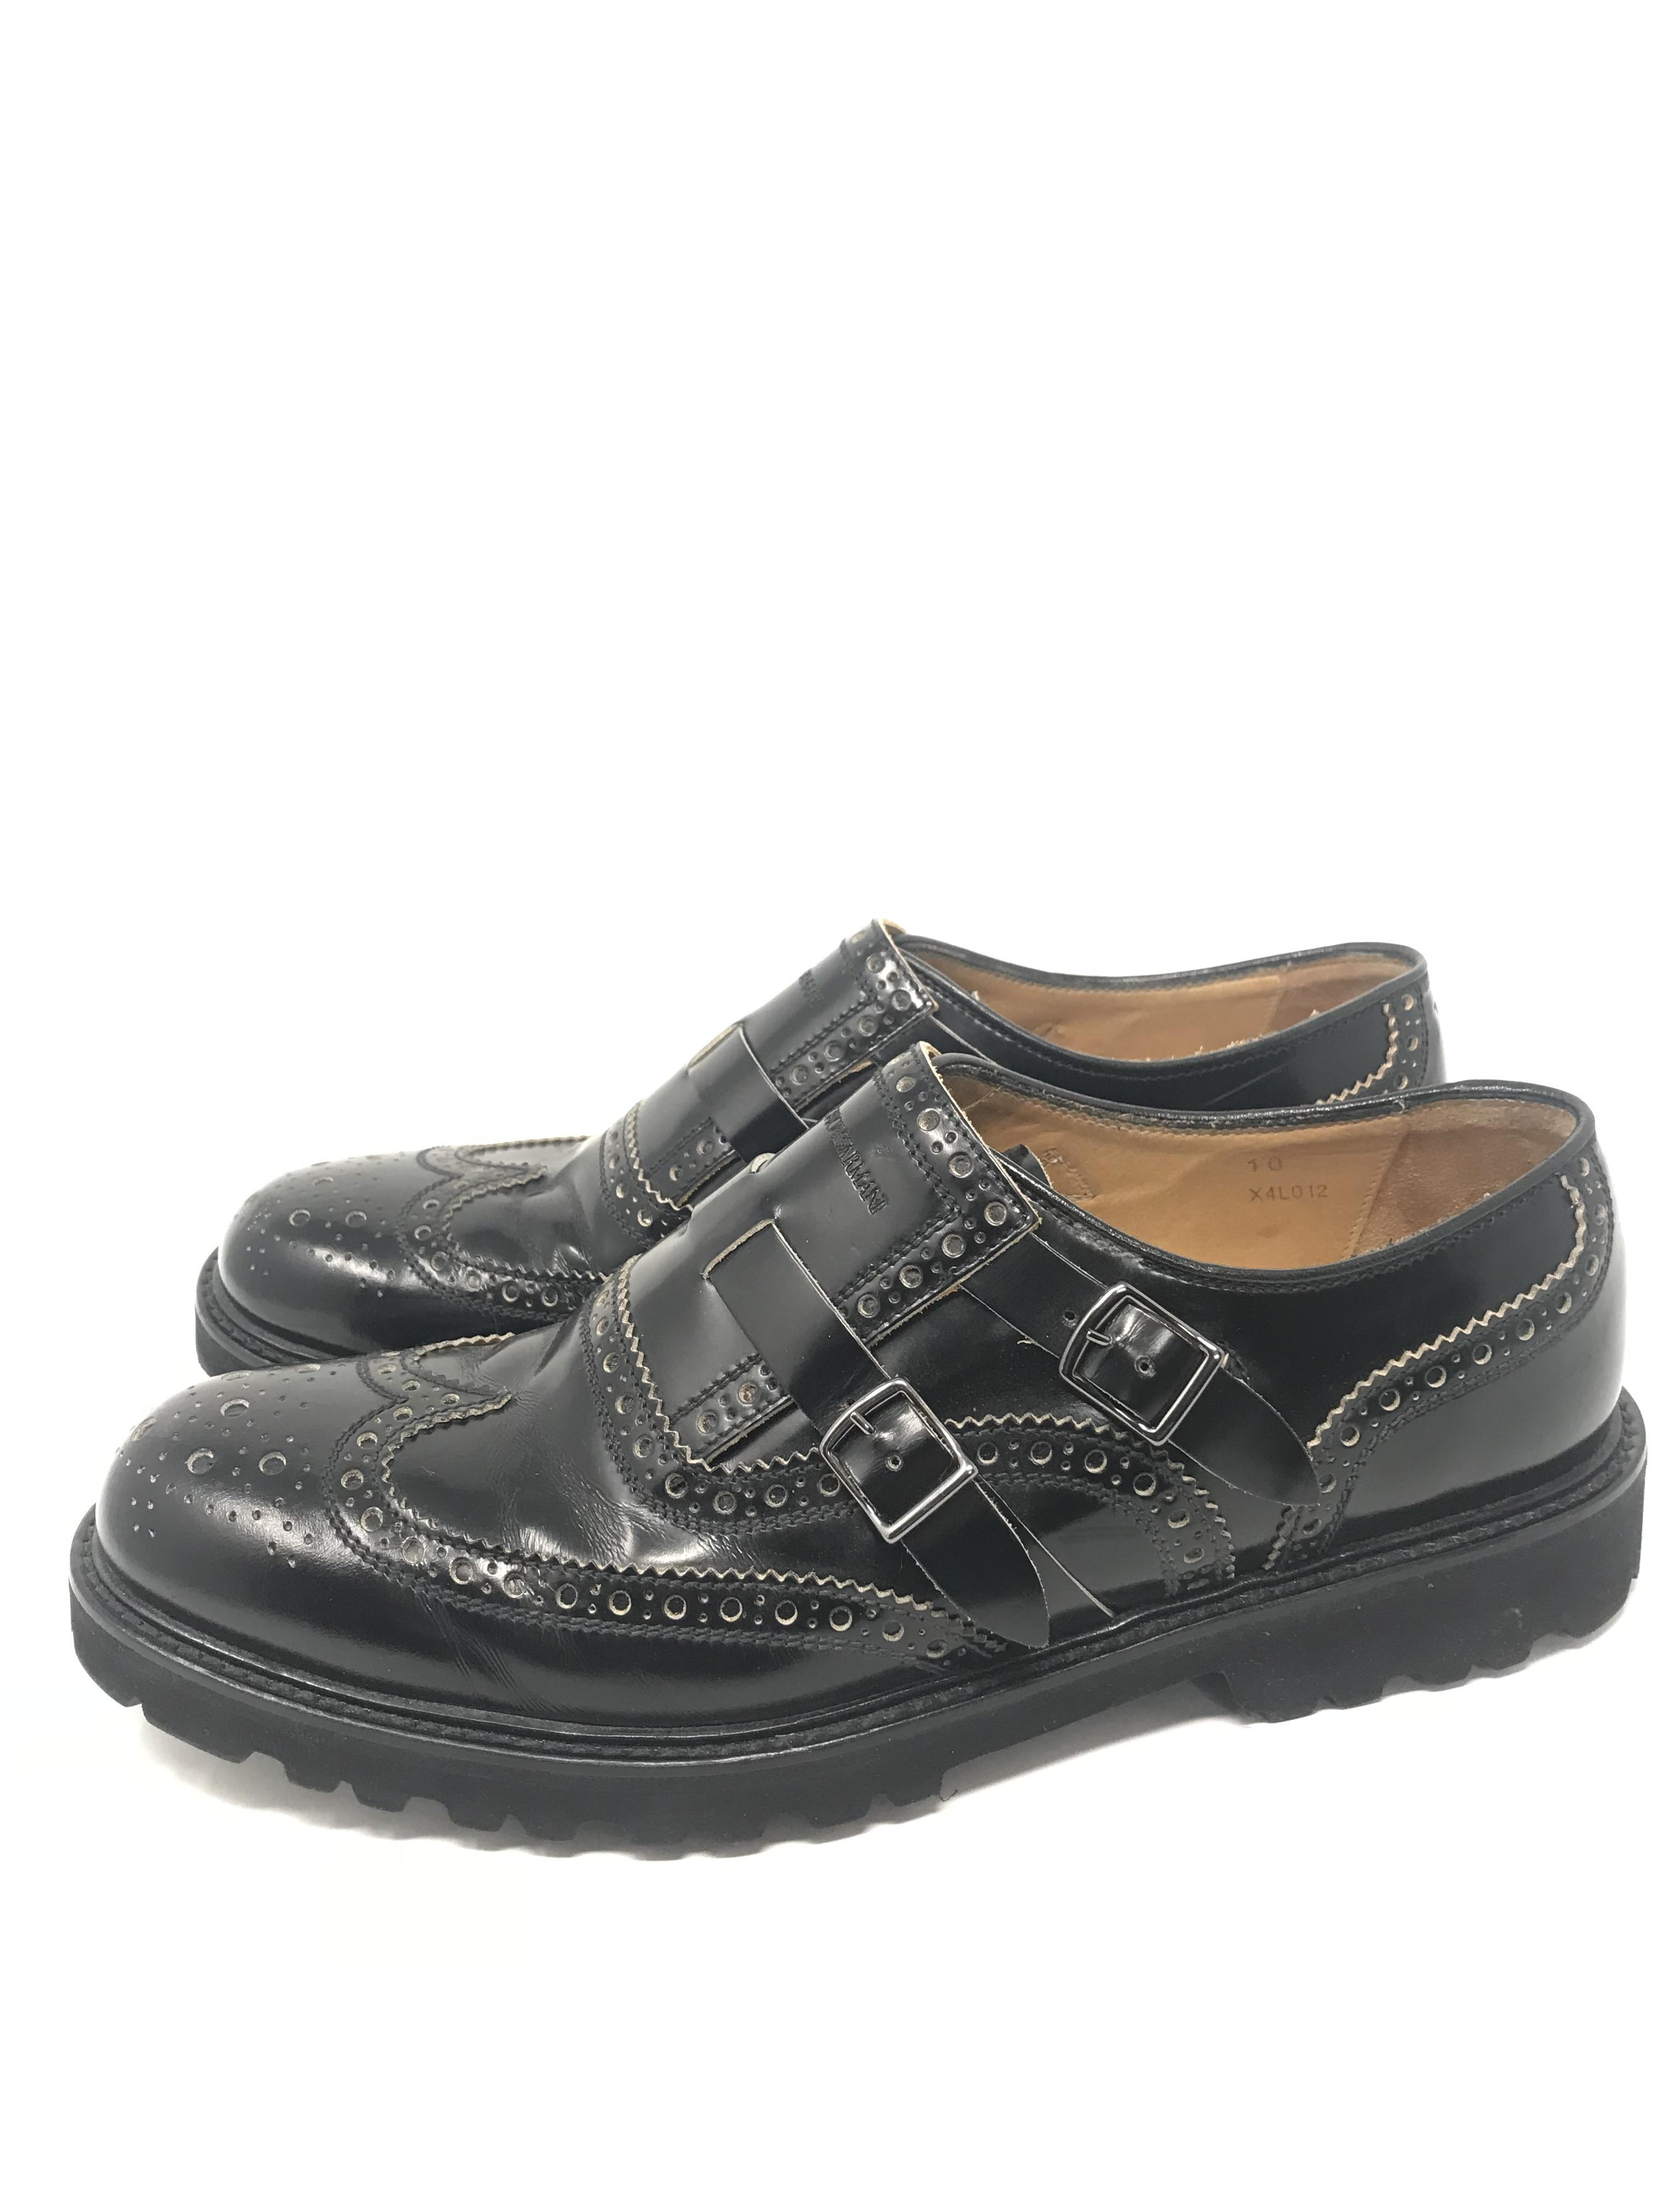 Armani Shoes Price: $136.99